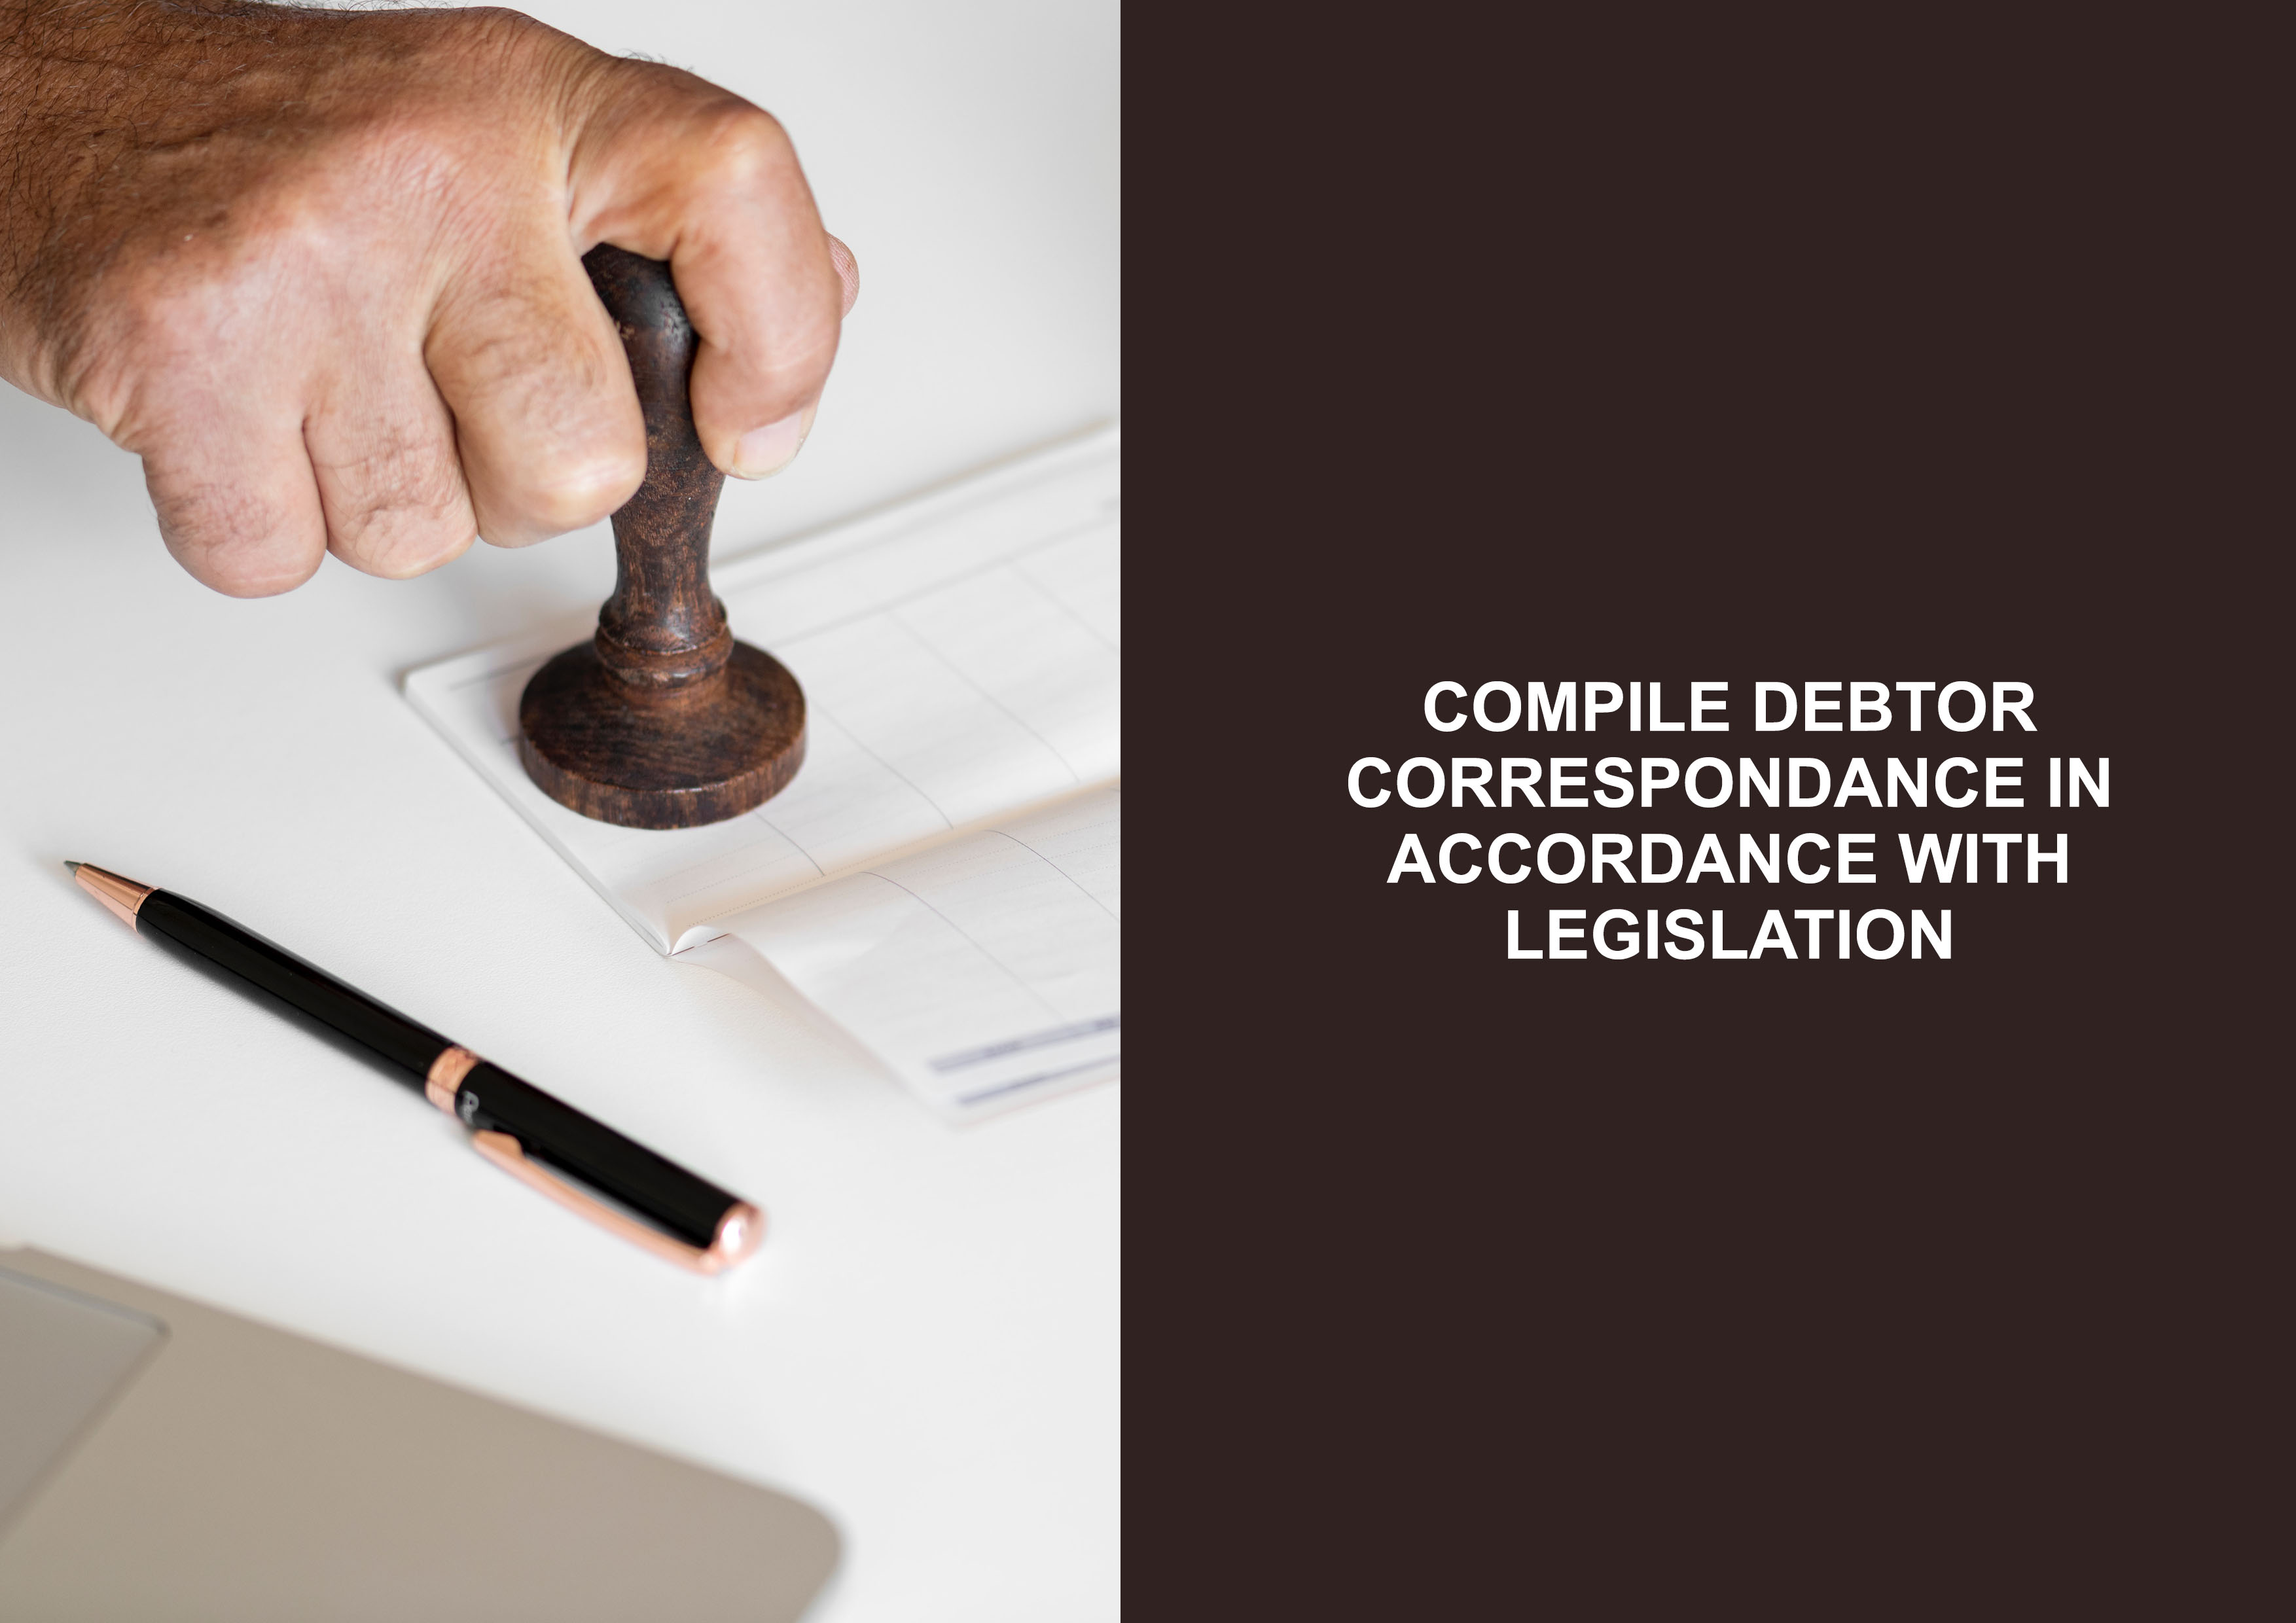 Compile Debtor Correspondence in Accordance With Legislation